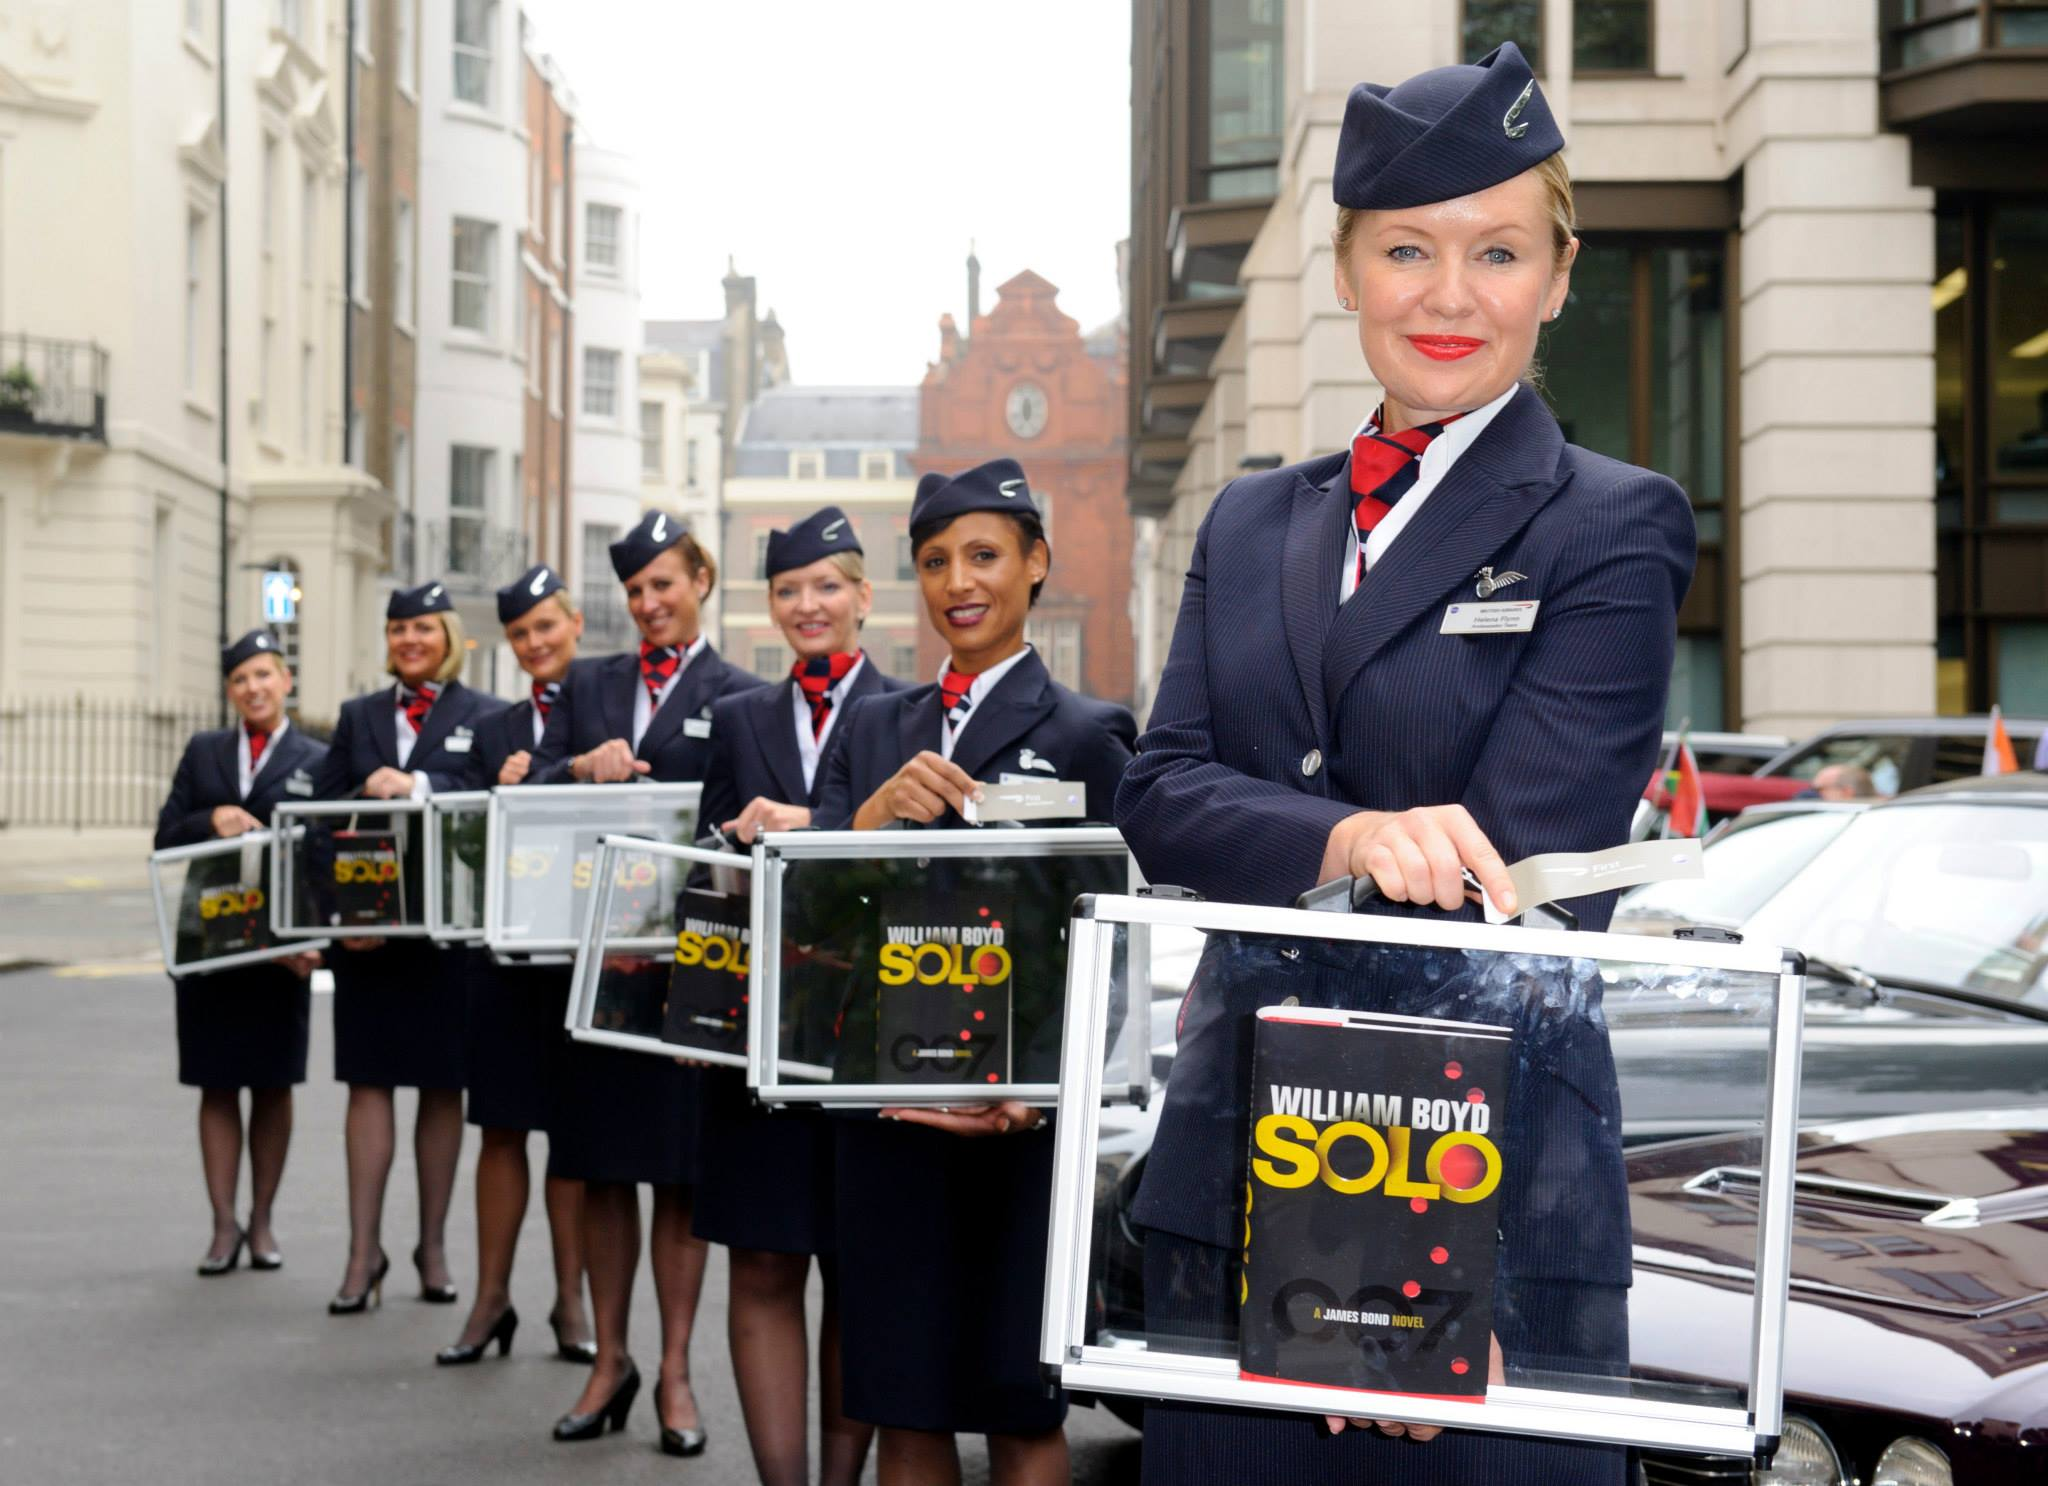 In a global event this morning to mark the publication of the new James Bond novel SOLO, 7 copies of the novel, signed and stamped by author William Boyd, were sent on 7 SOLO missions around the world in association with British Airways.